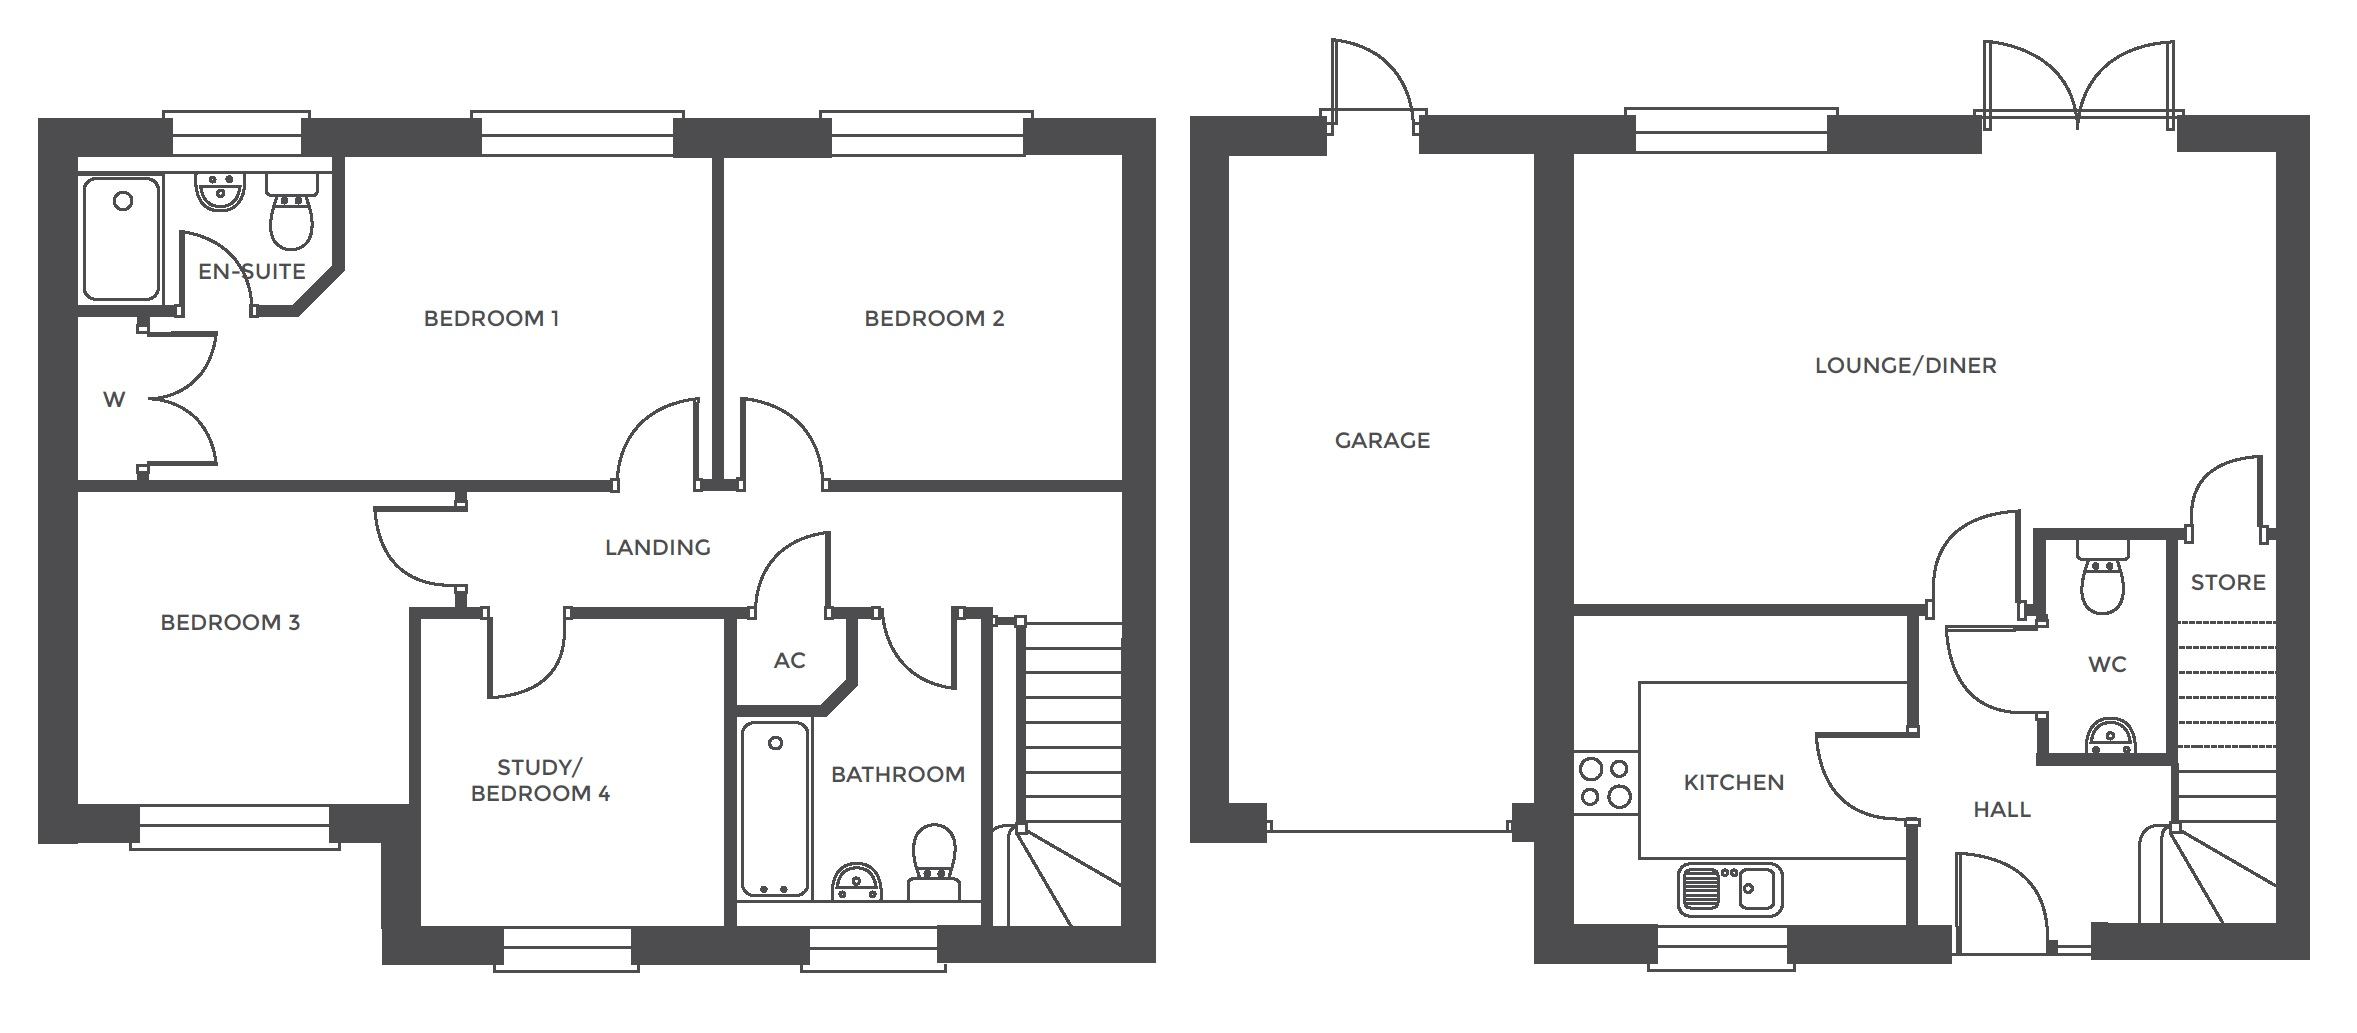 Repington Walk, Plot 8 floor plan